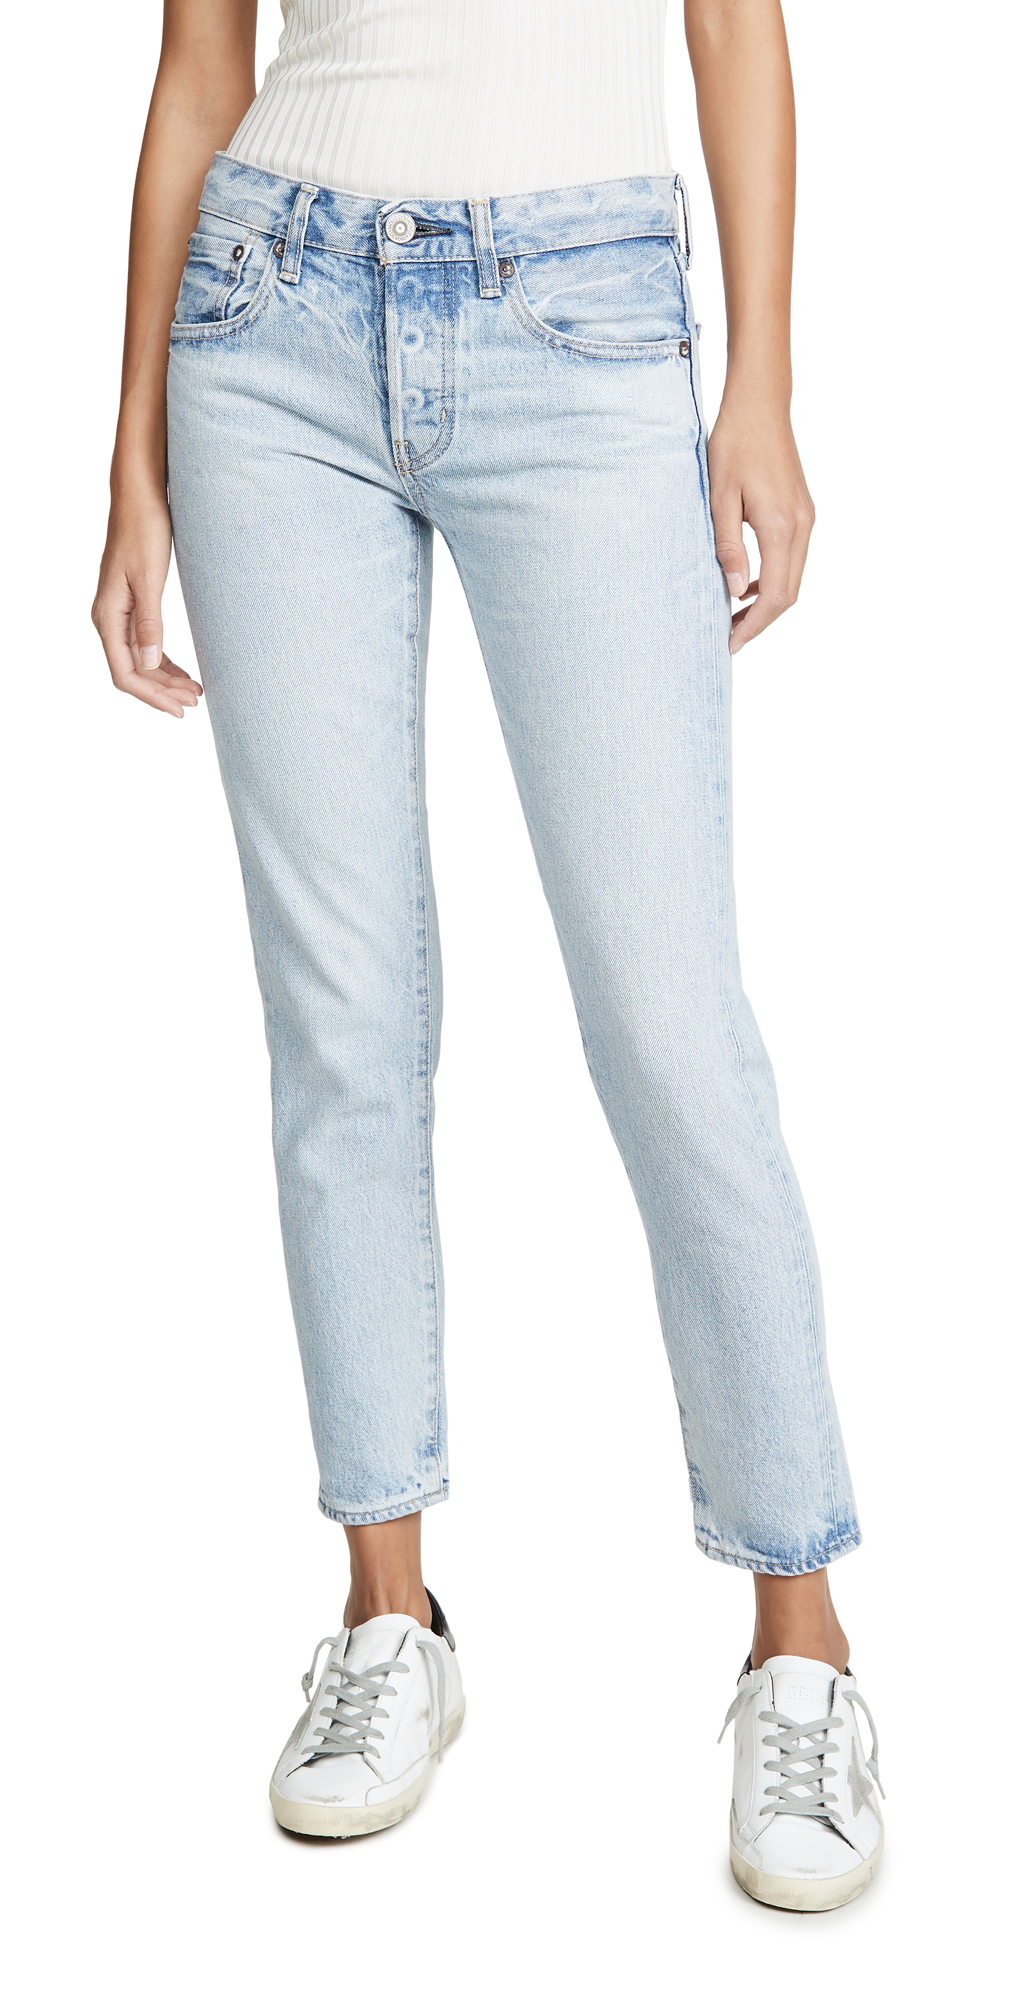 MOUSSY VINTAGE Camilla Tapered Jeans